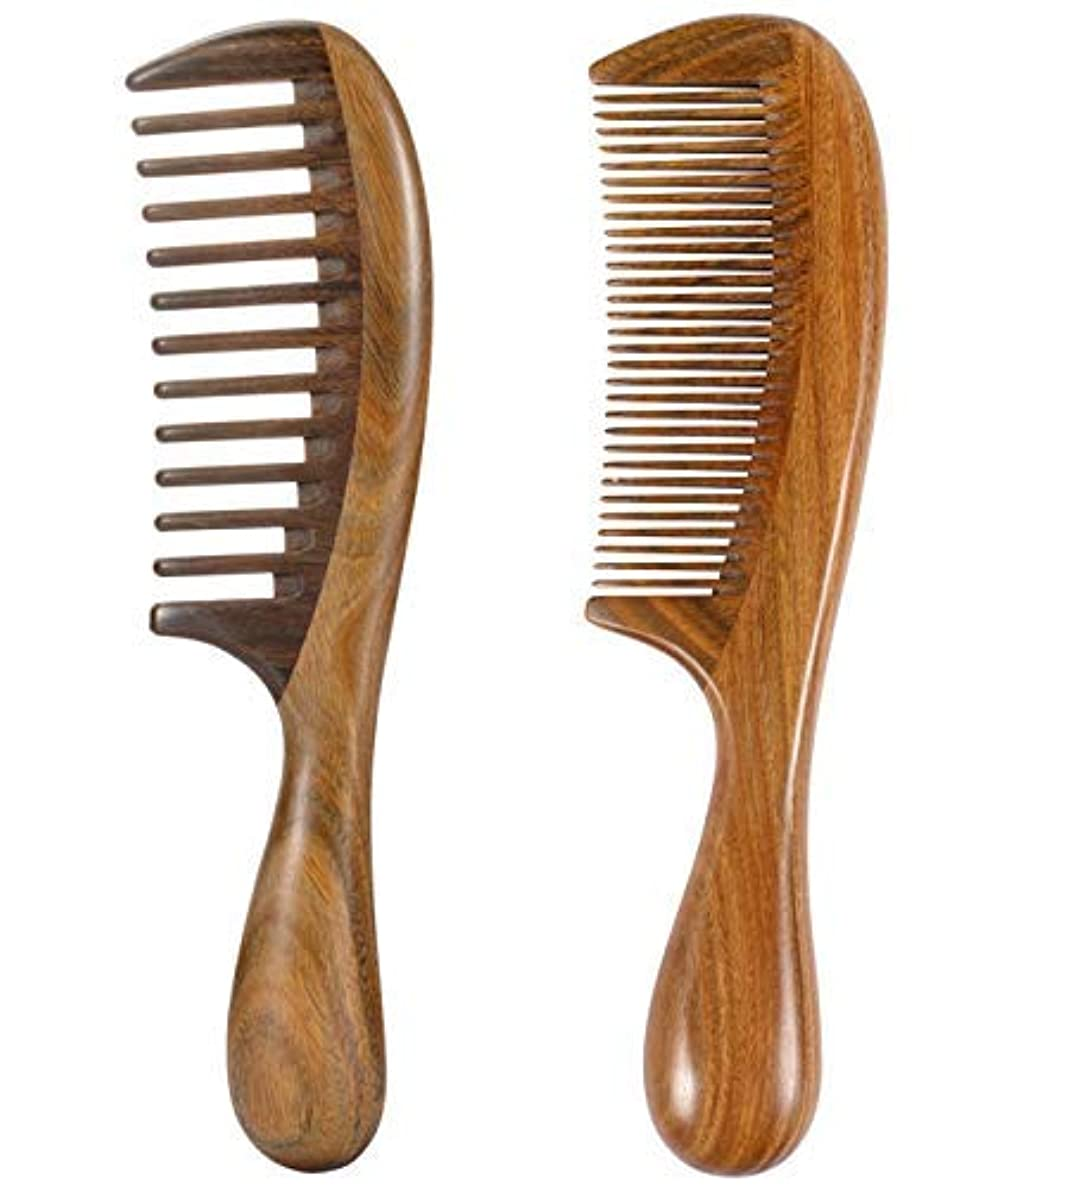 テセウスコレクション情熱的iPang 2pcs Wooden Hair Comb Wide Tooth Comb and Find Tooth Comb Detangling Sandalwood Comb [並行輸入品]